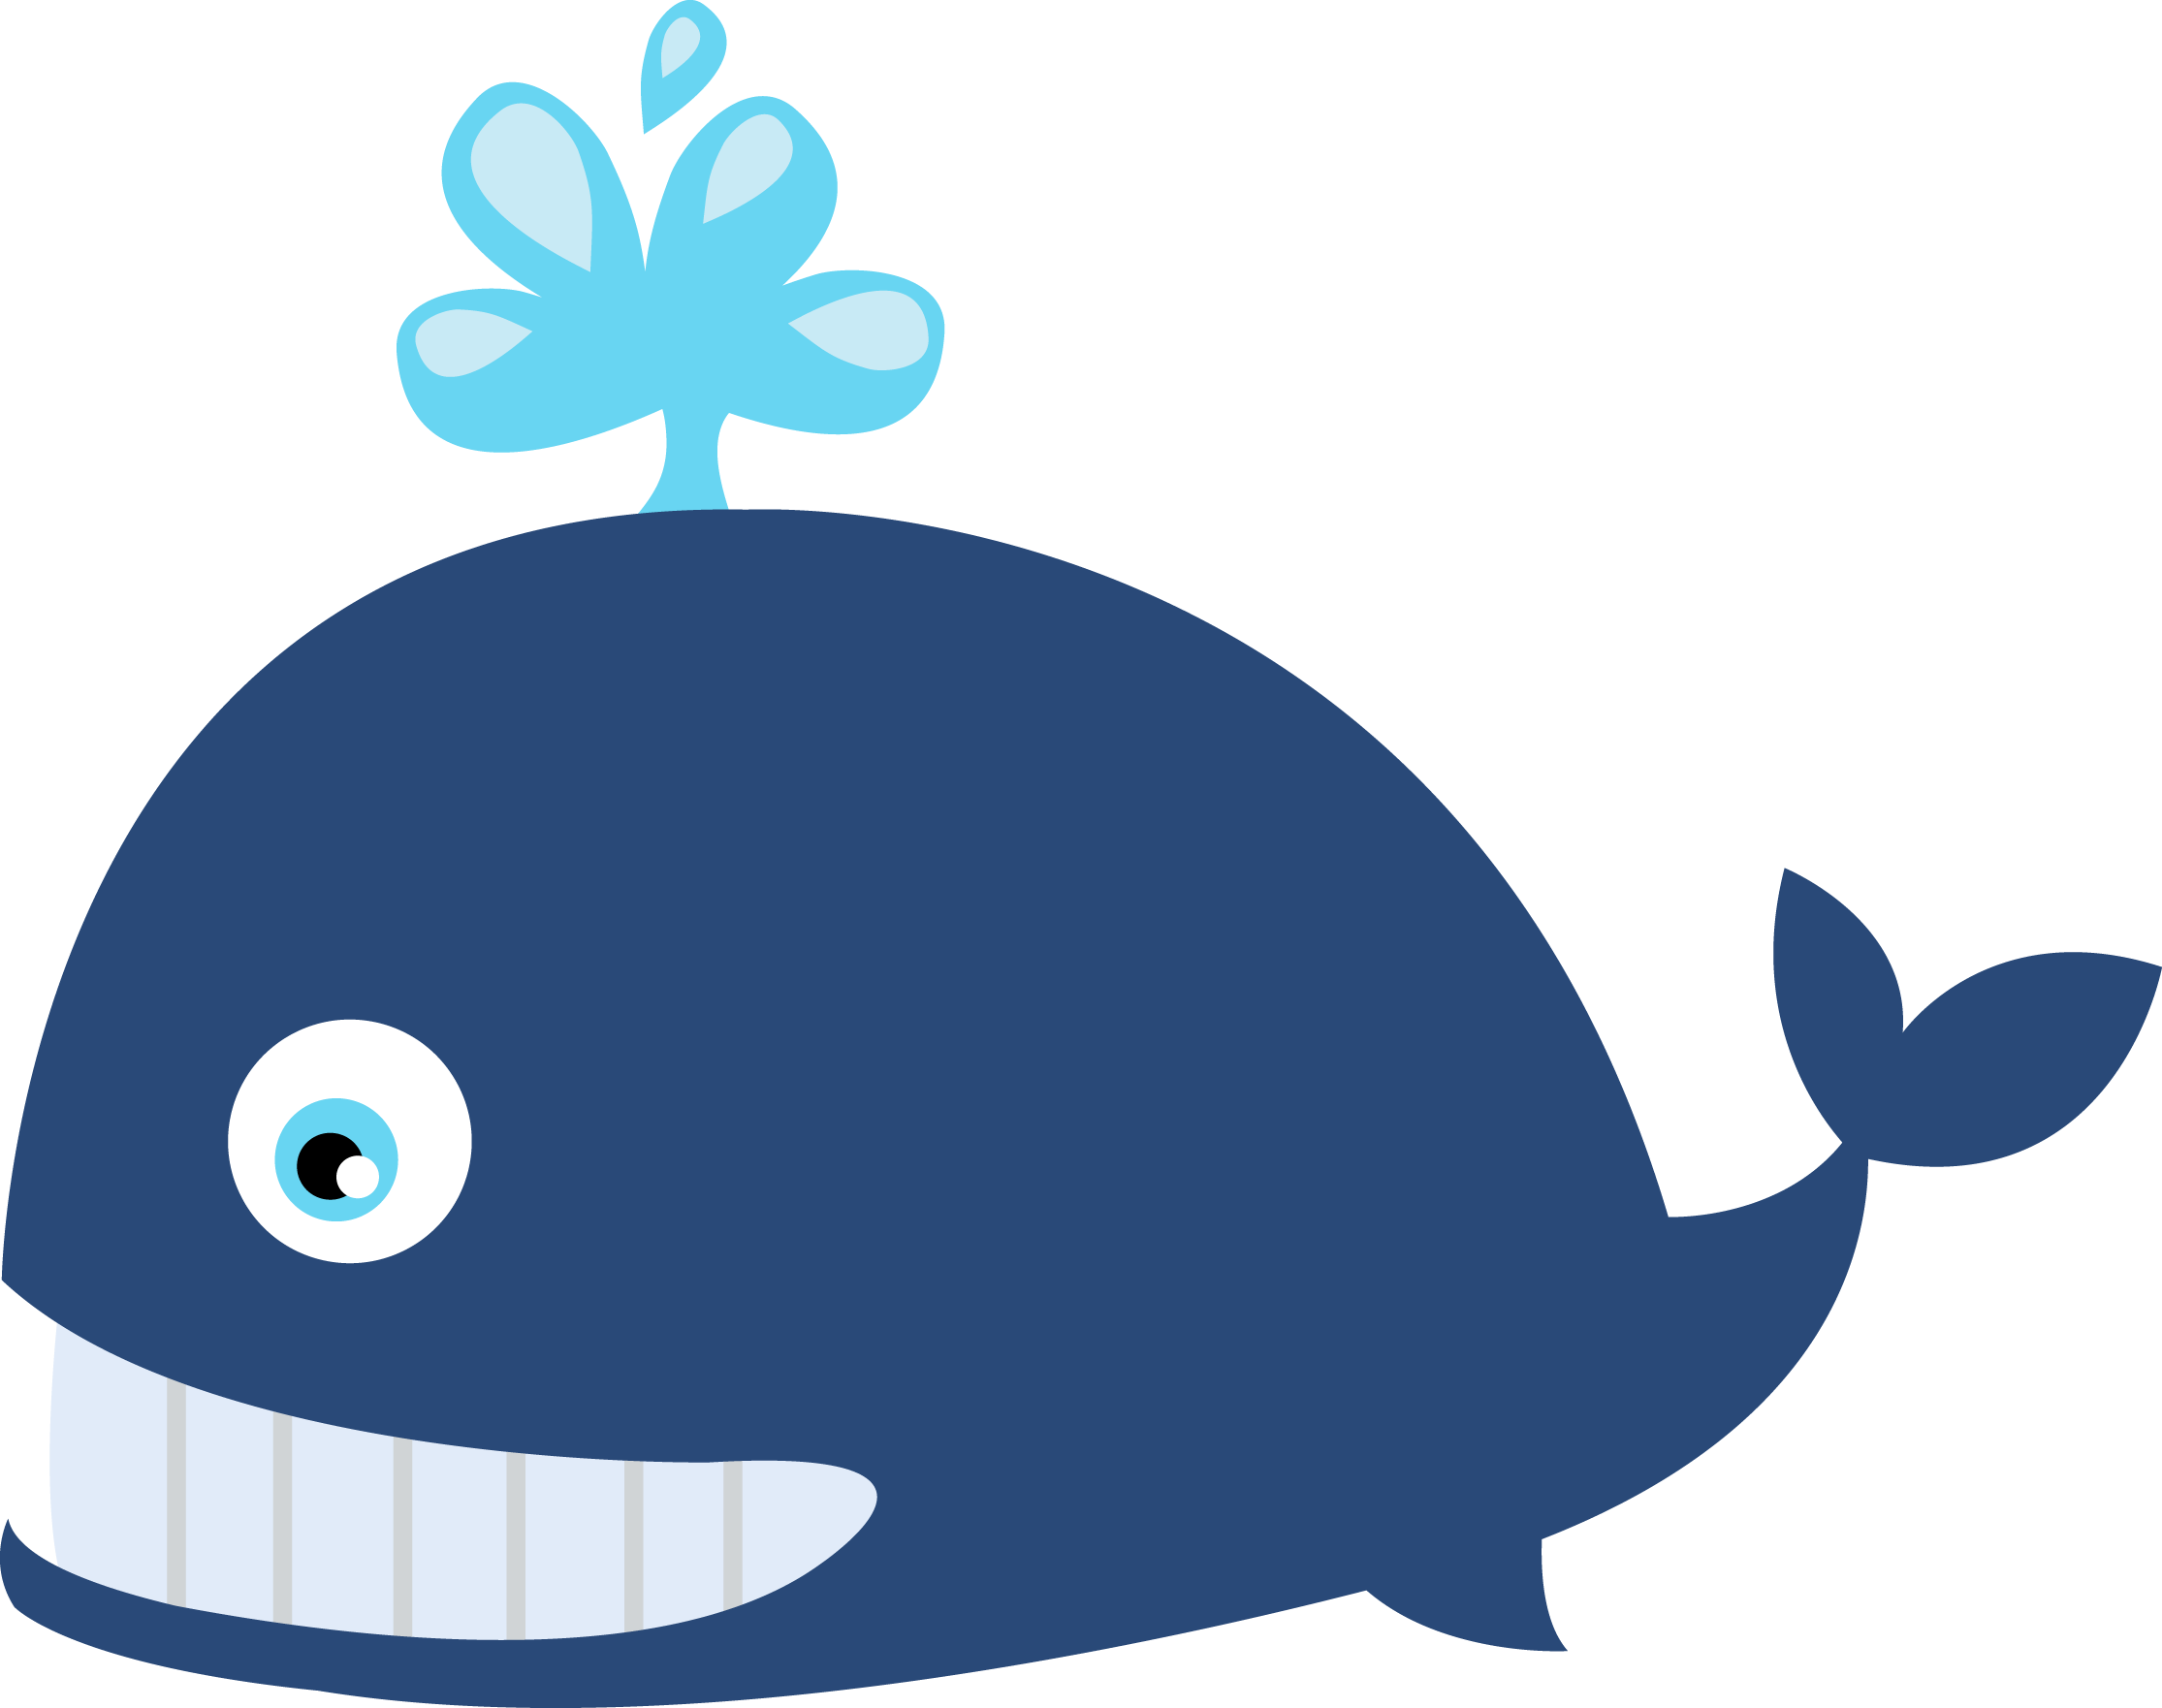 Nautical clipart whale. Pin by pic festas